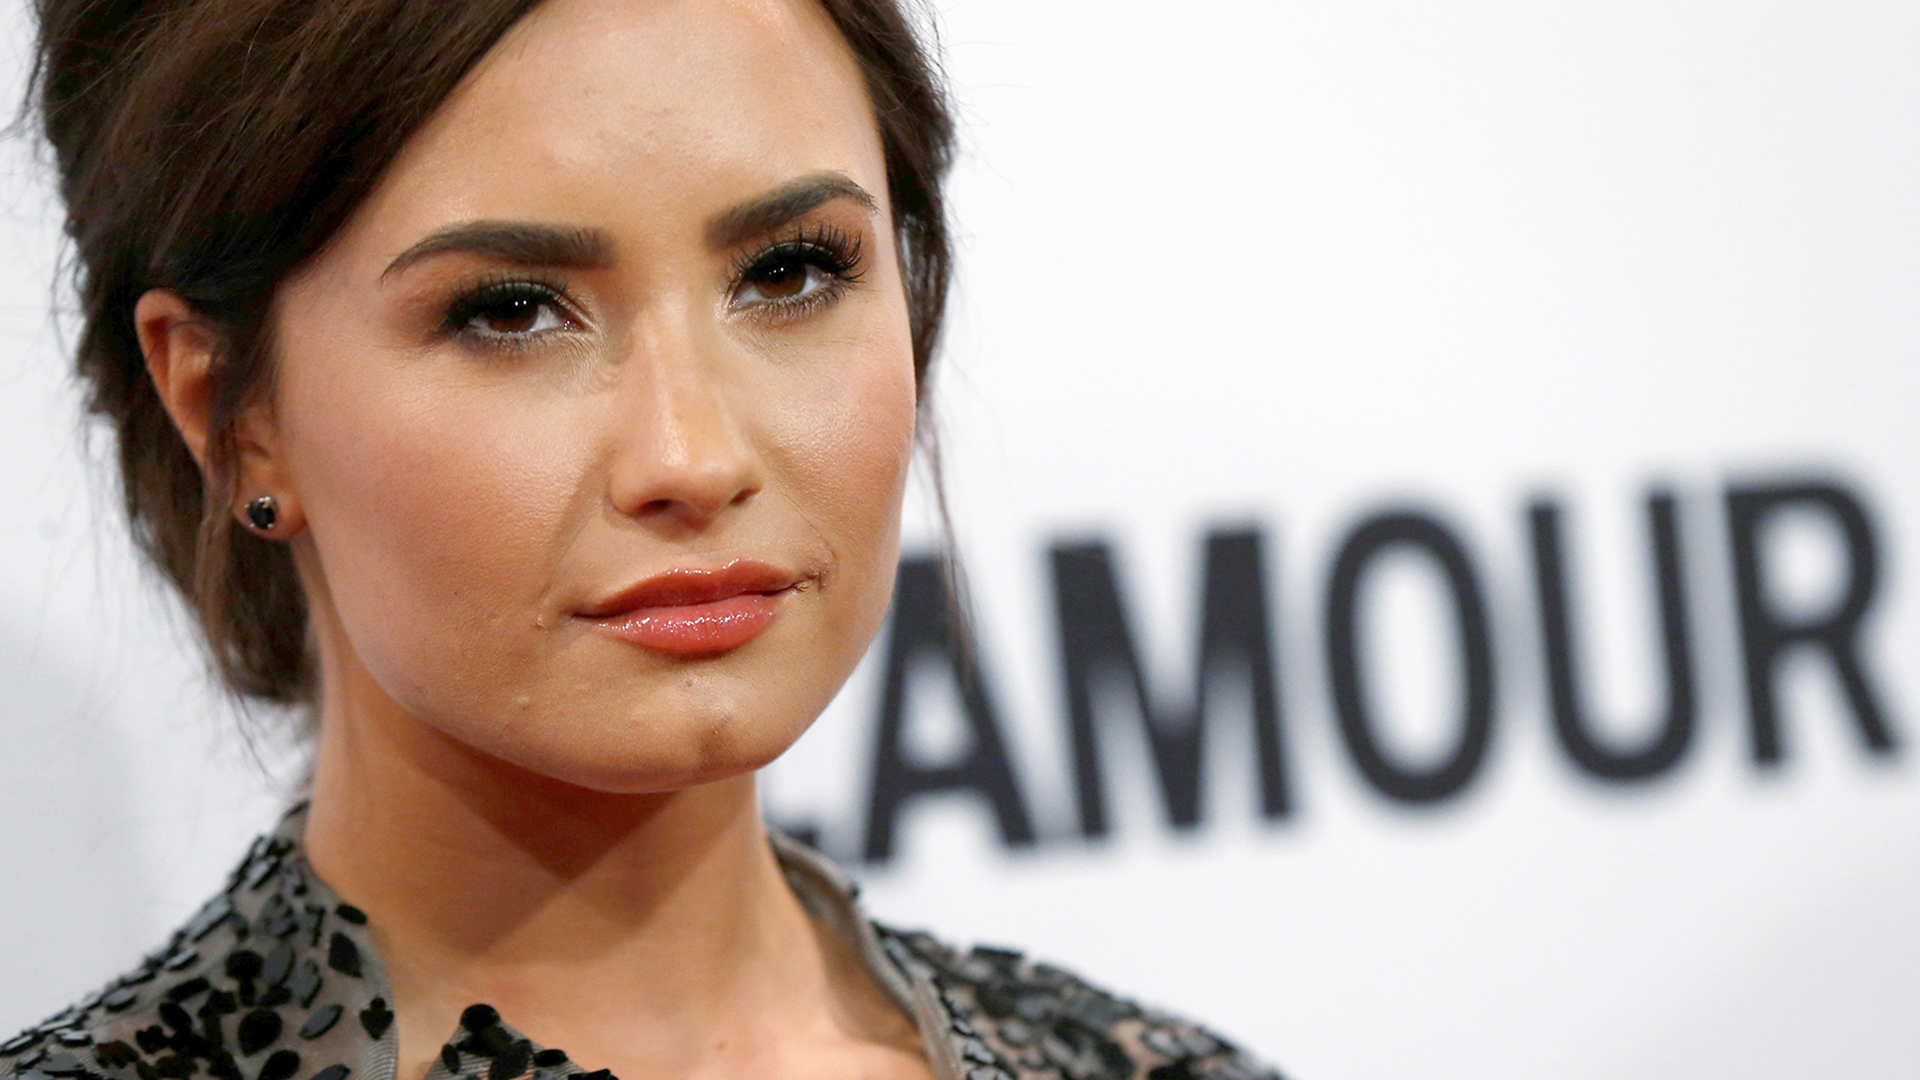 Demi Lovato Opens Up About Bipolar Disorder and Her BodyInsecurities